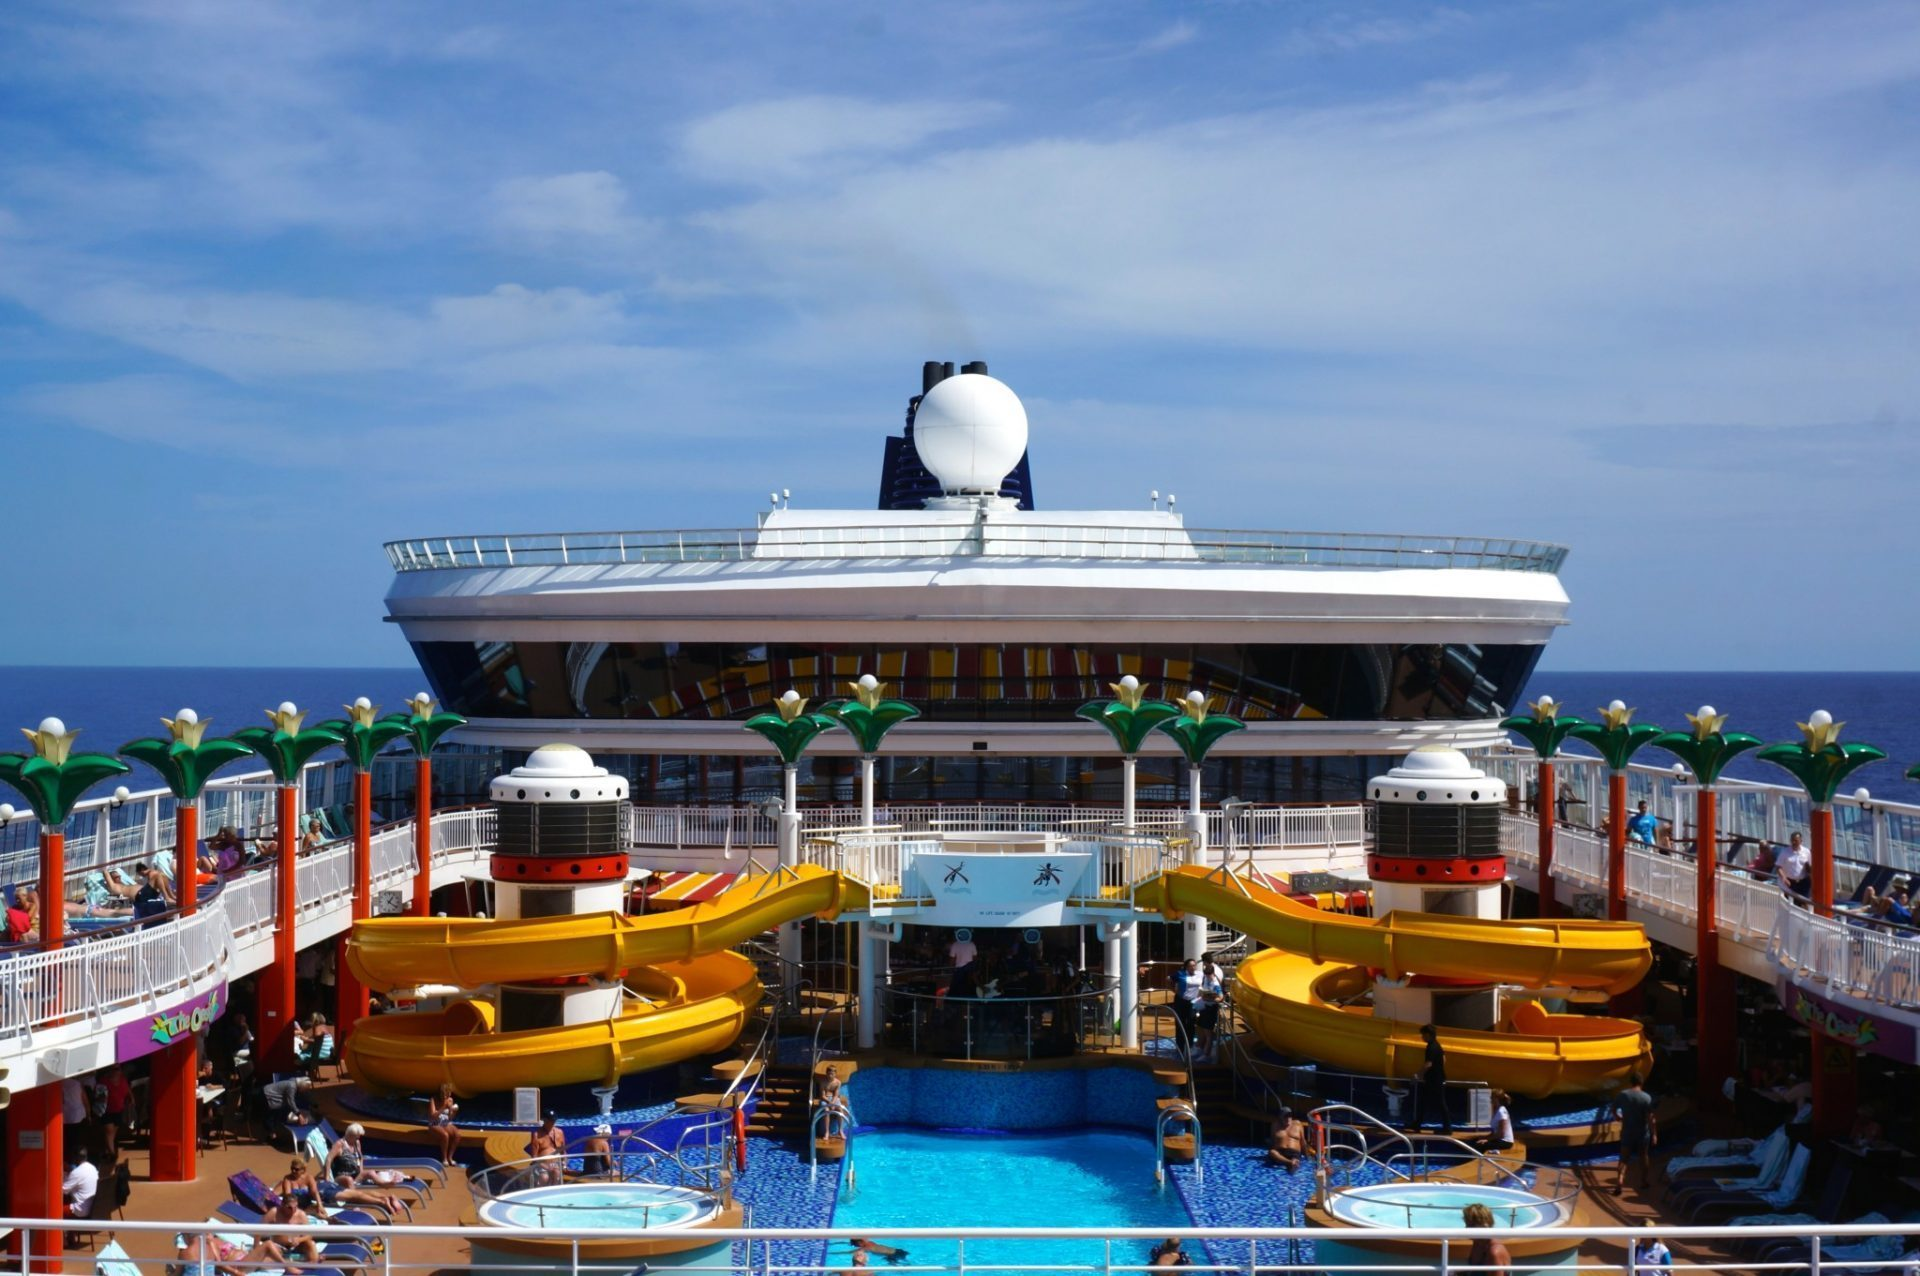 How to Find Cheapest Repositioning Cruise Deals 2019: Under